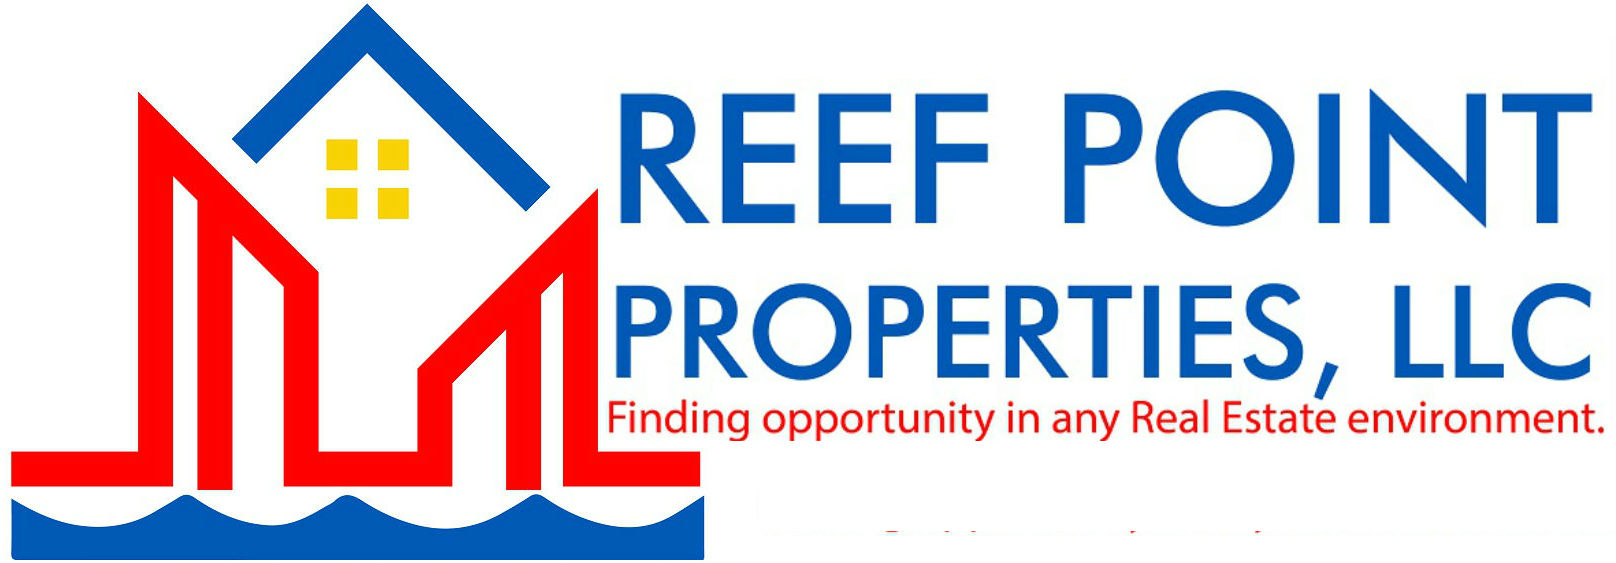 Reef Point Properties, LLC